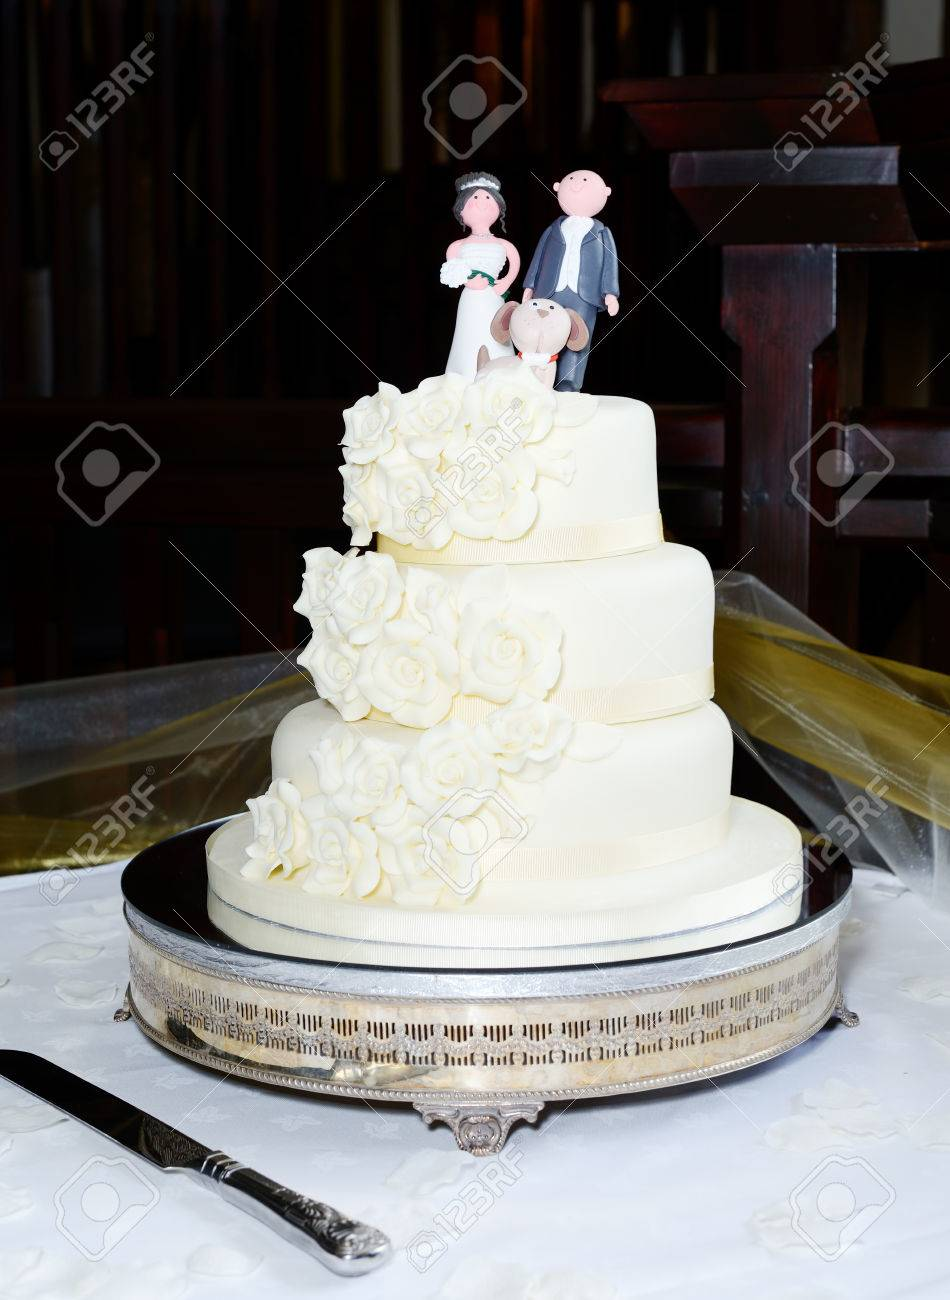 Three Tear Wedding Cakes.Three Tier Wedding Cake With Bride Groom And Dog Topper At Reception